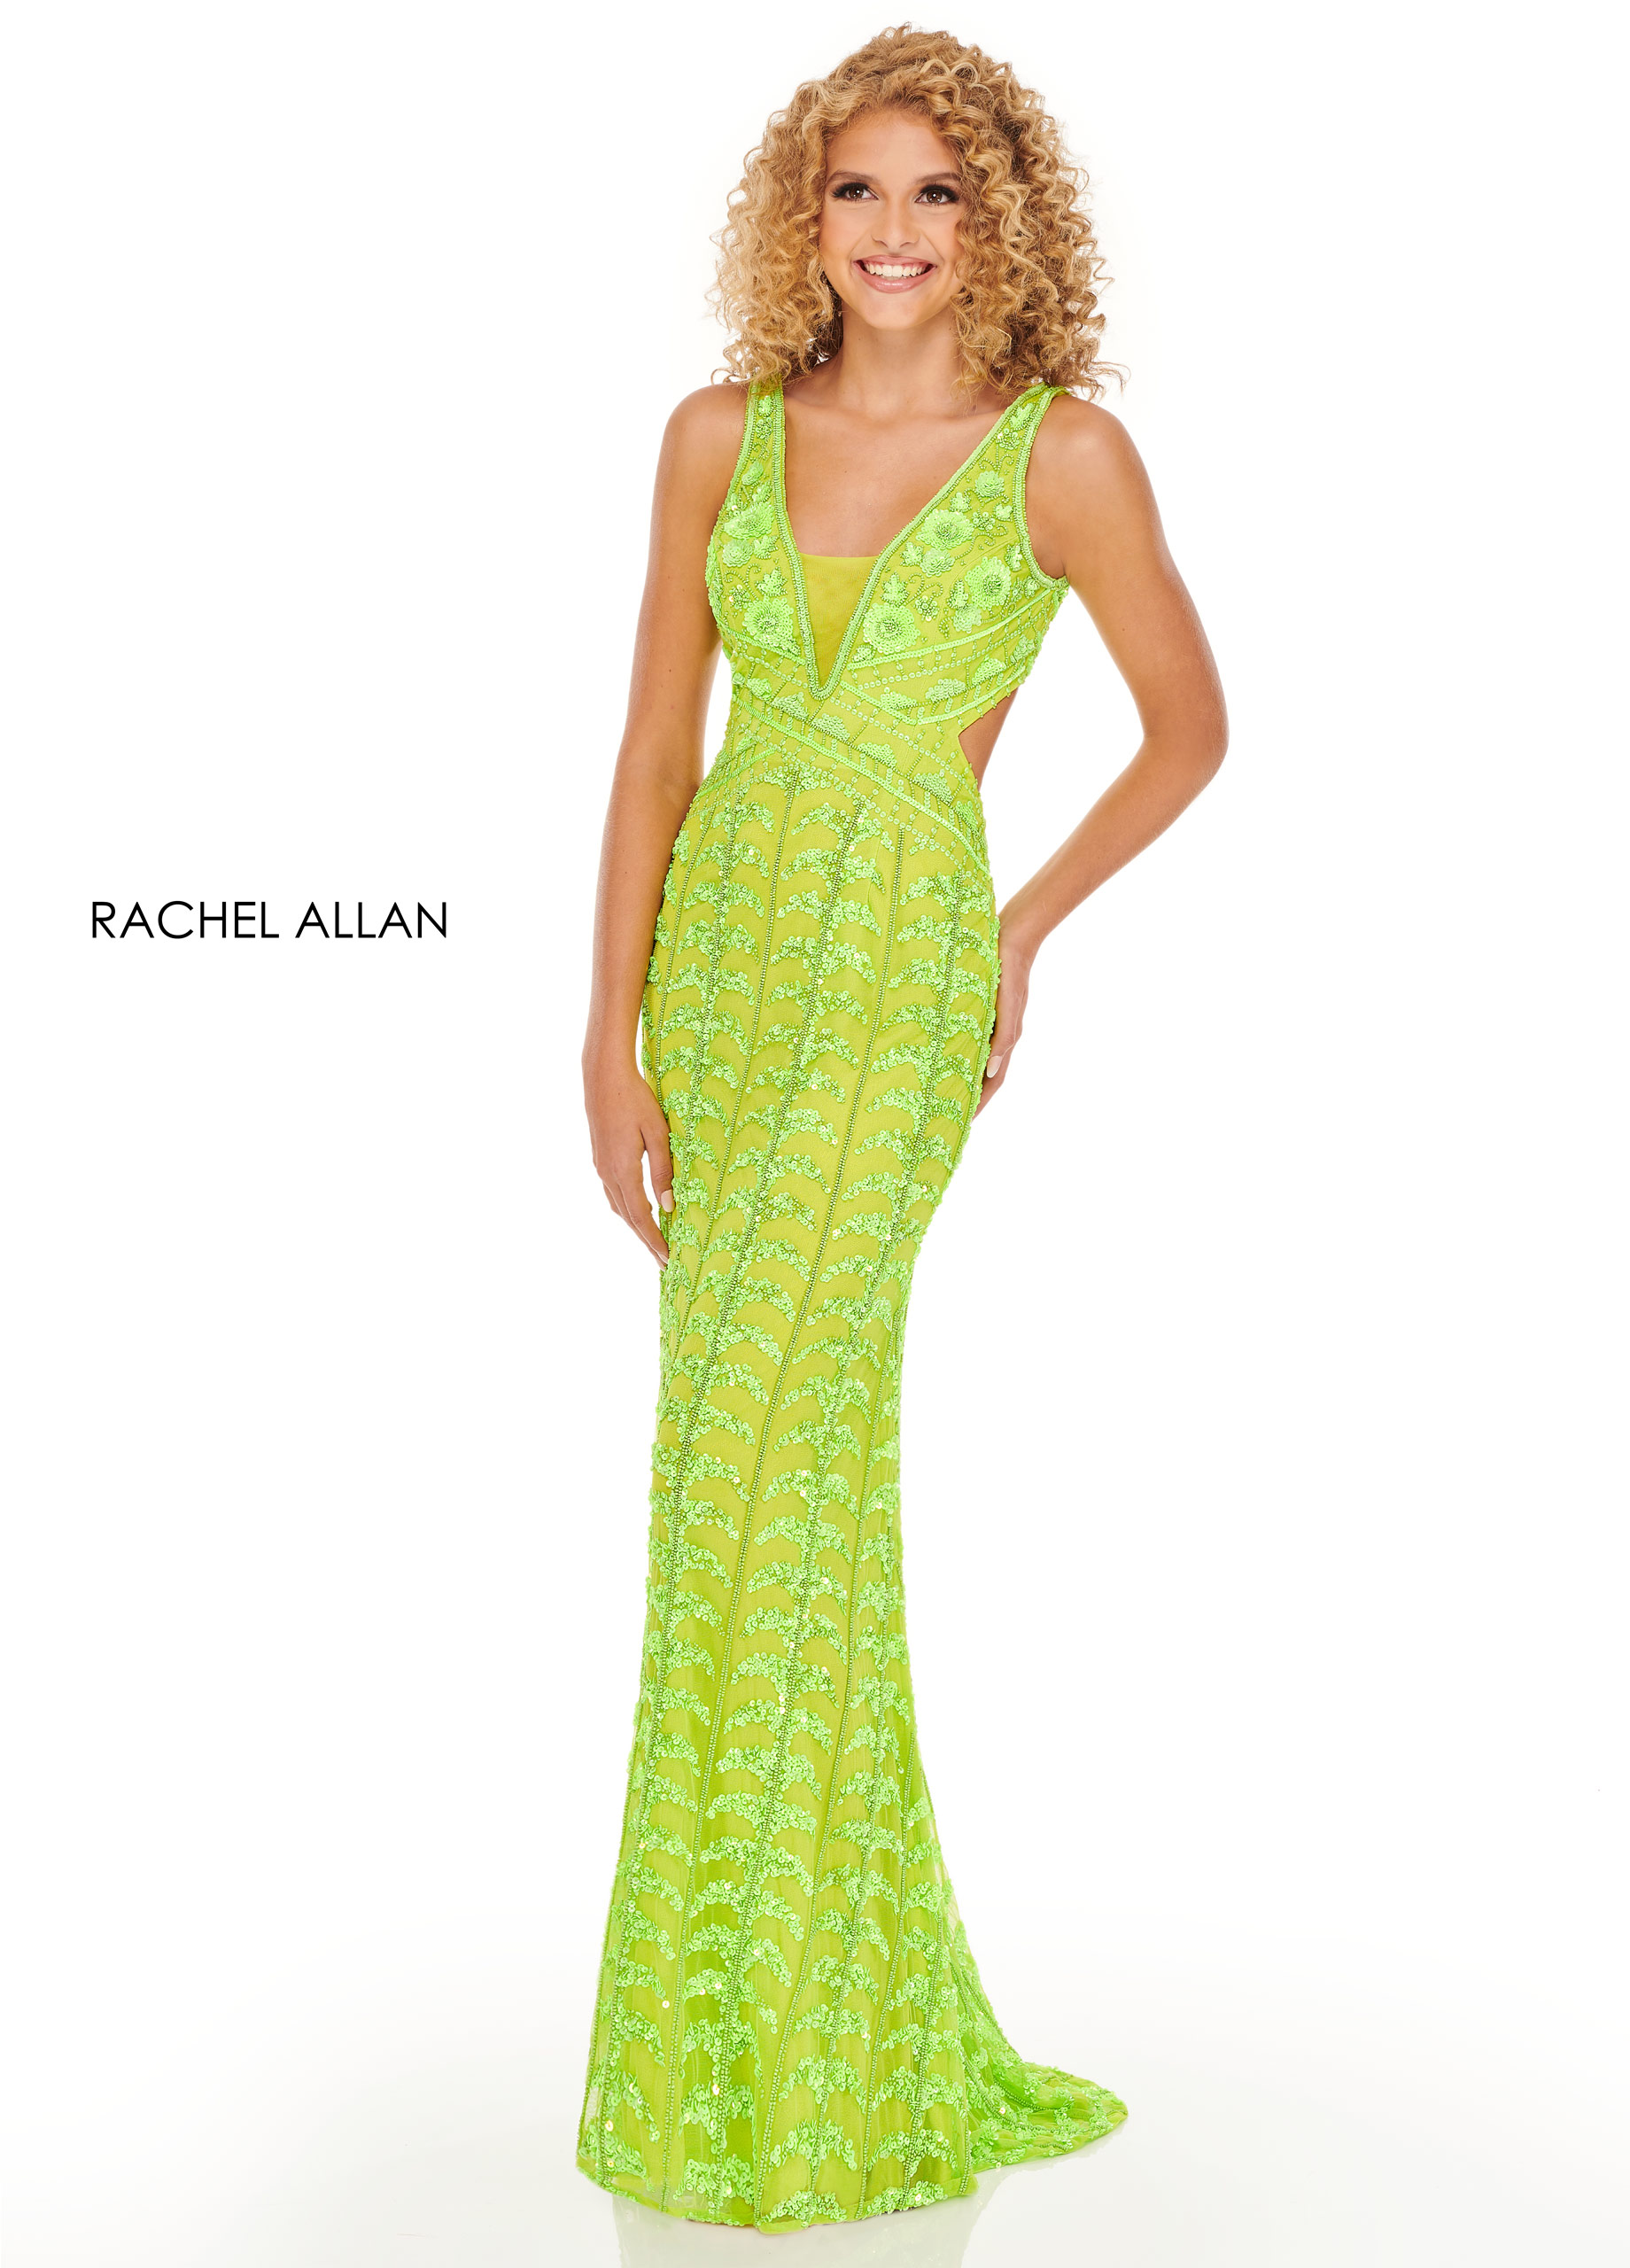 V-Neck Fitted Long Prom Dresses in Yellow Color